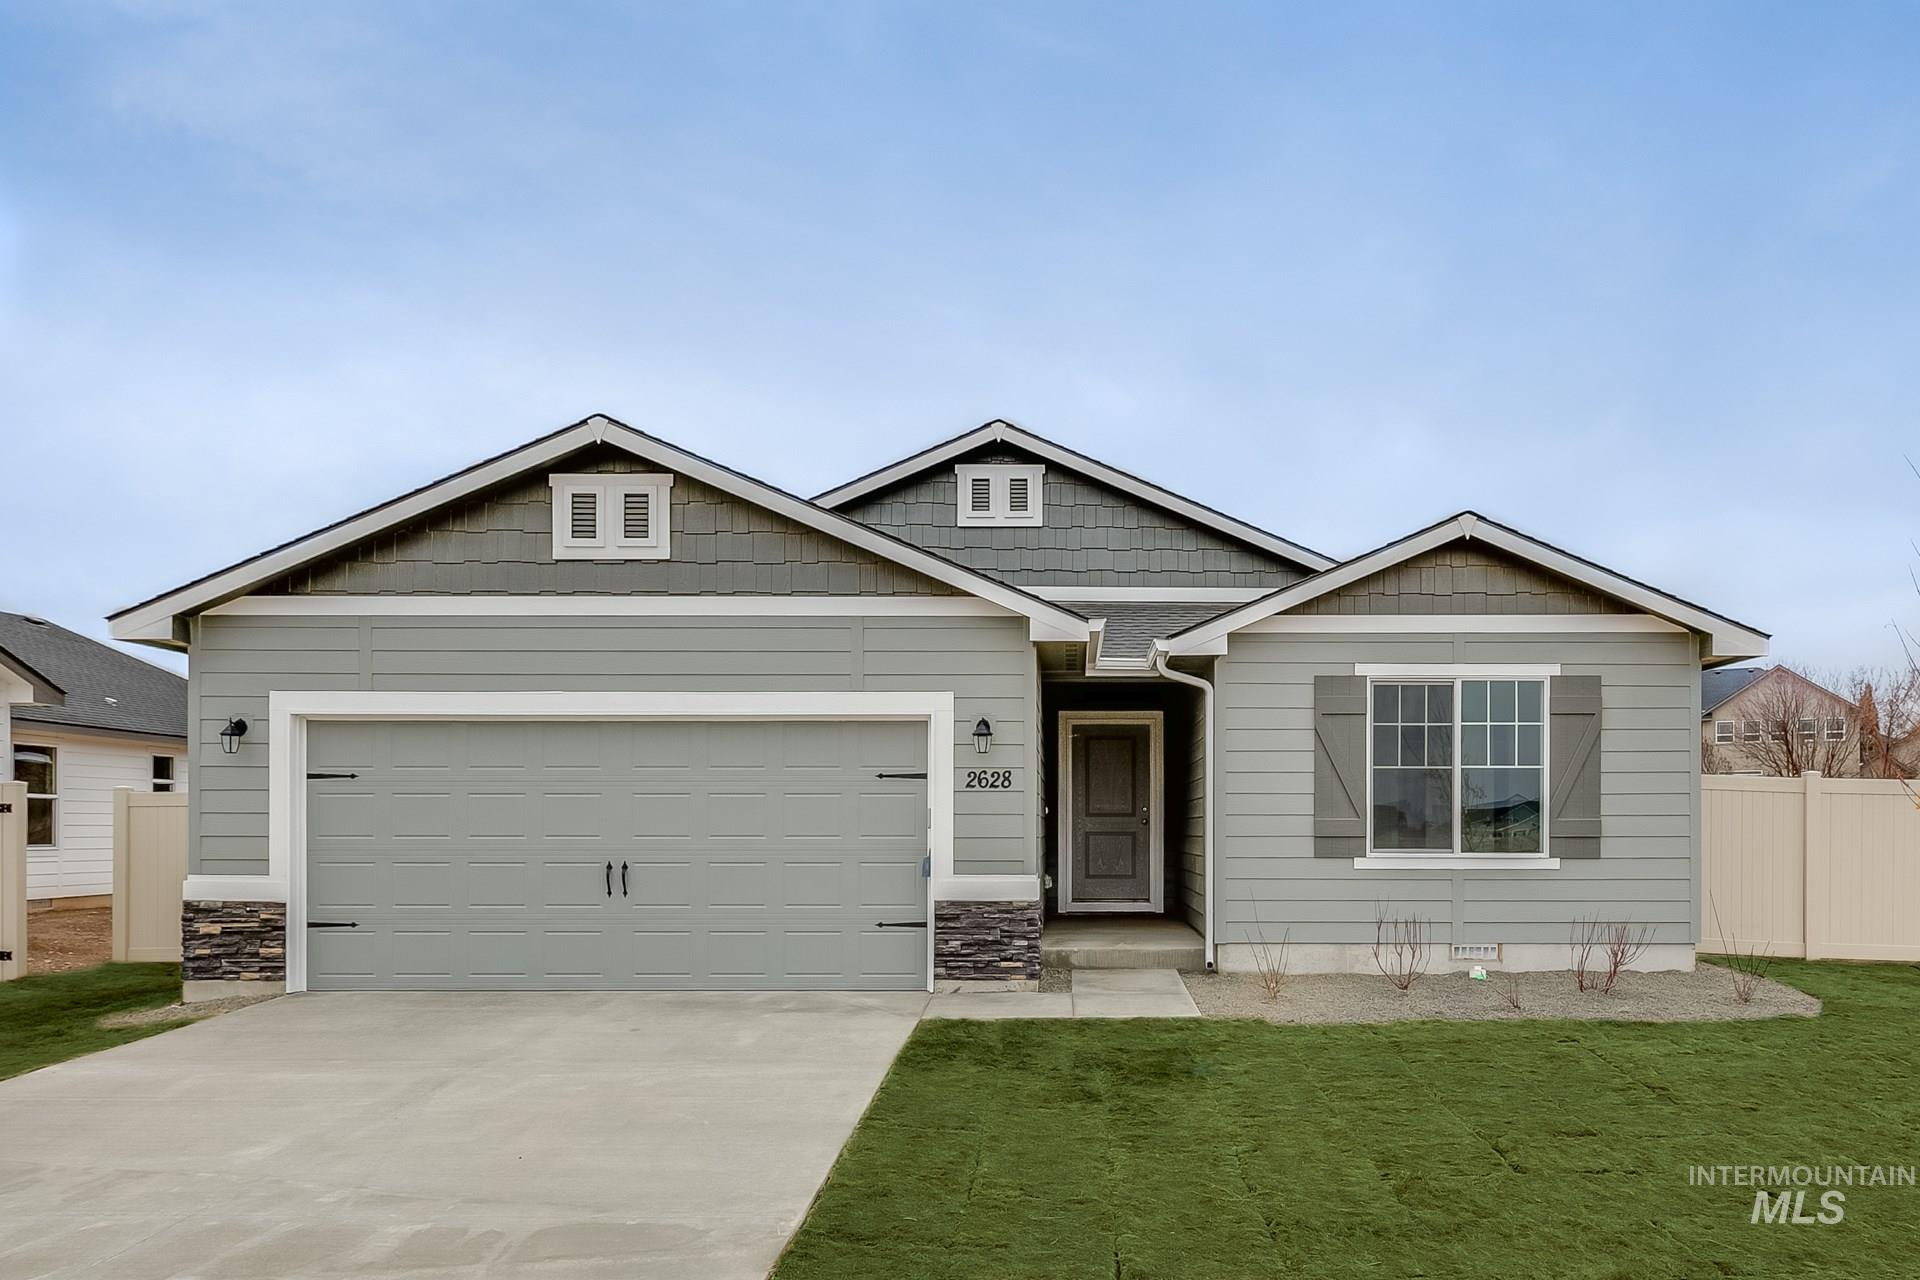 Photo for 11902 W Box Canyon St, Star, ID 83669 (MLS # 98776213)